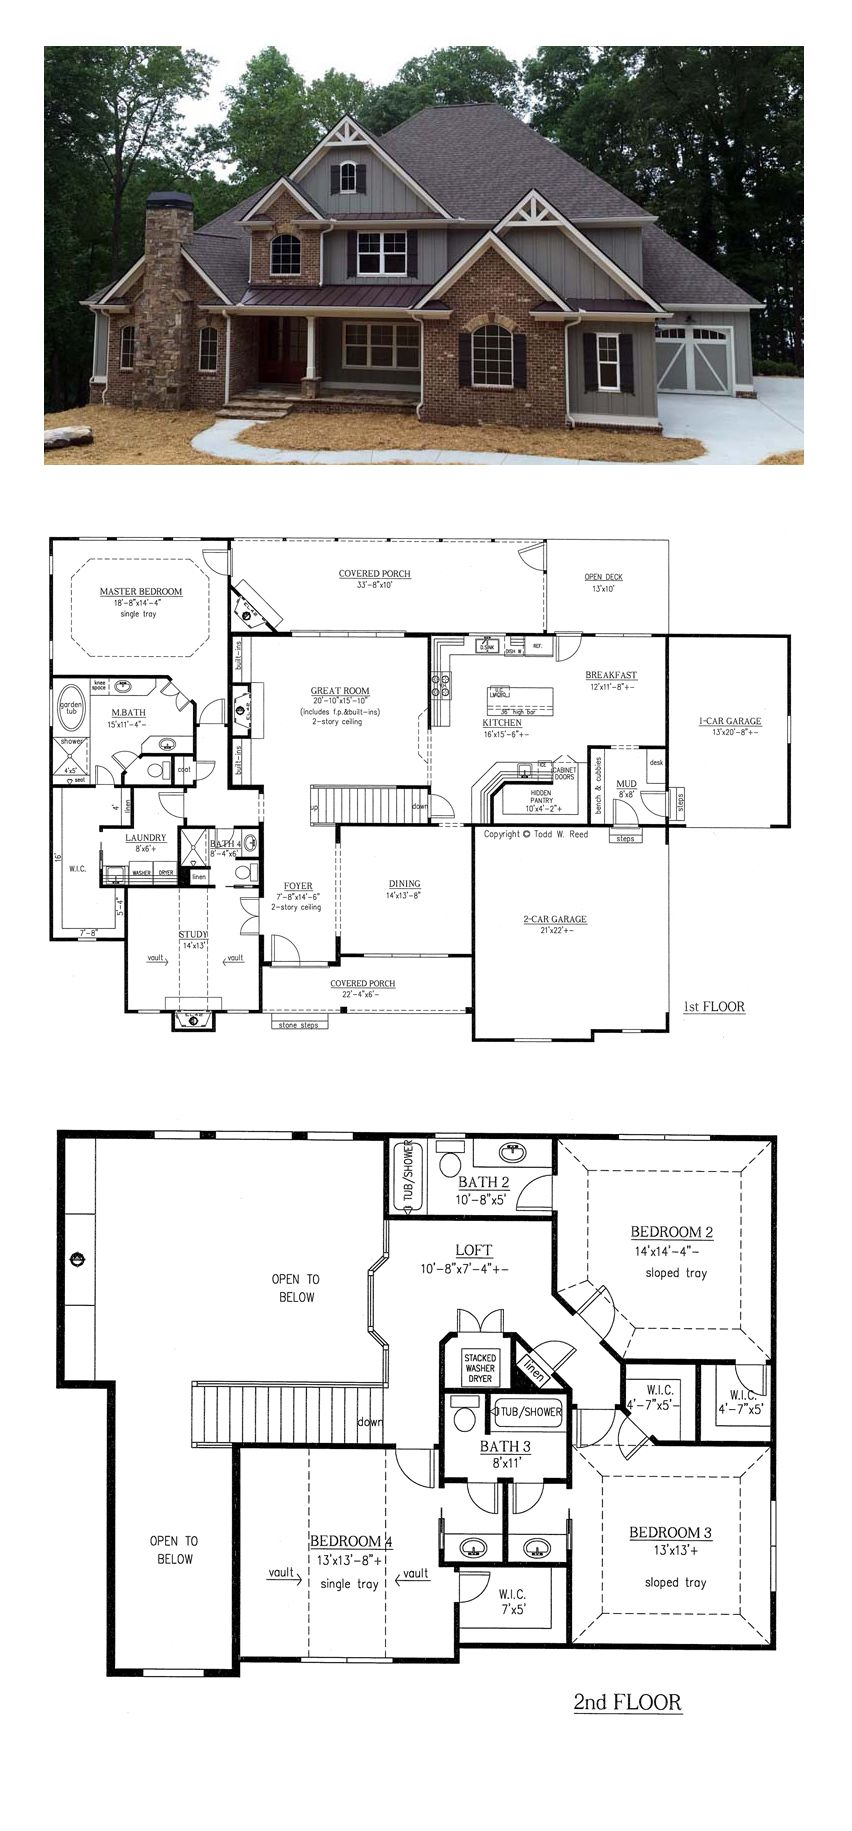 French Country House Plan 50263   Total Living Area  3290 sq  ft   4     French Country House Plan 50263   Total Living Area  3290 sq  ft   4  bedrooms and 4 bathrooms   frenchcountry